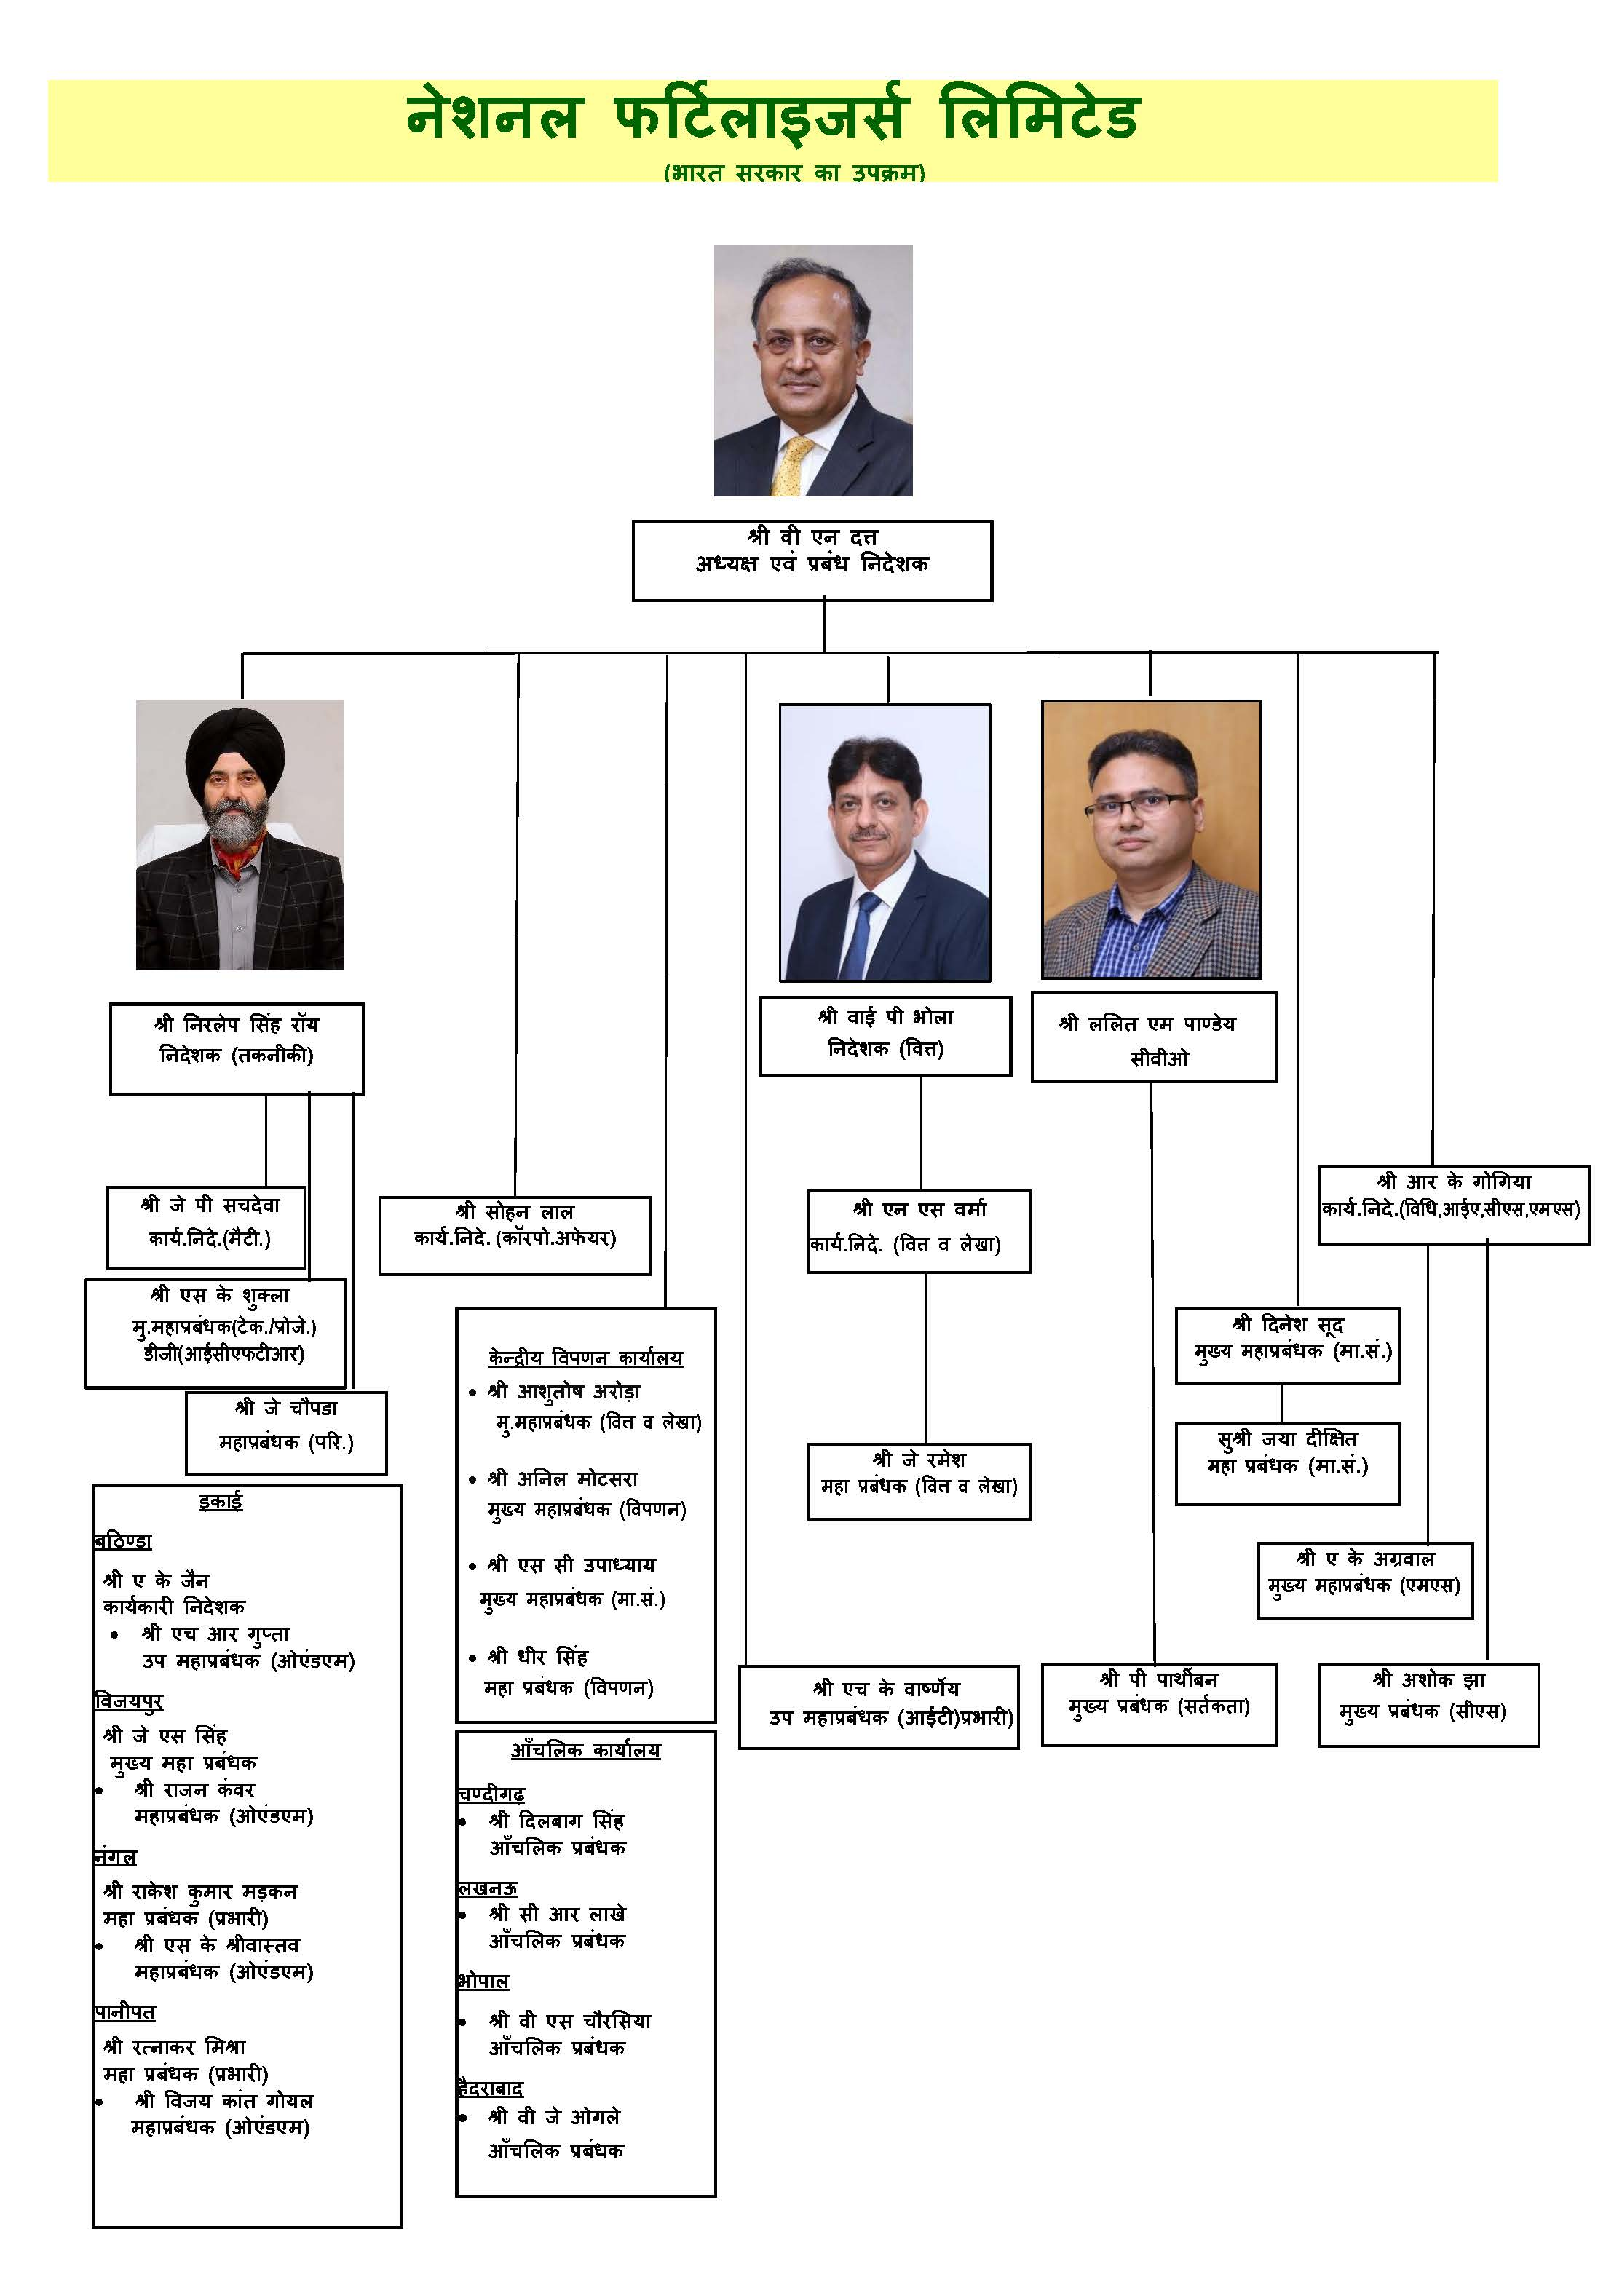 Organization Chart as on 26.11.2018